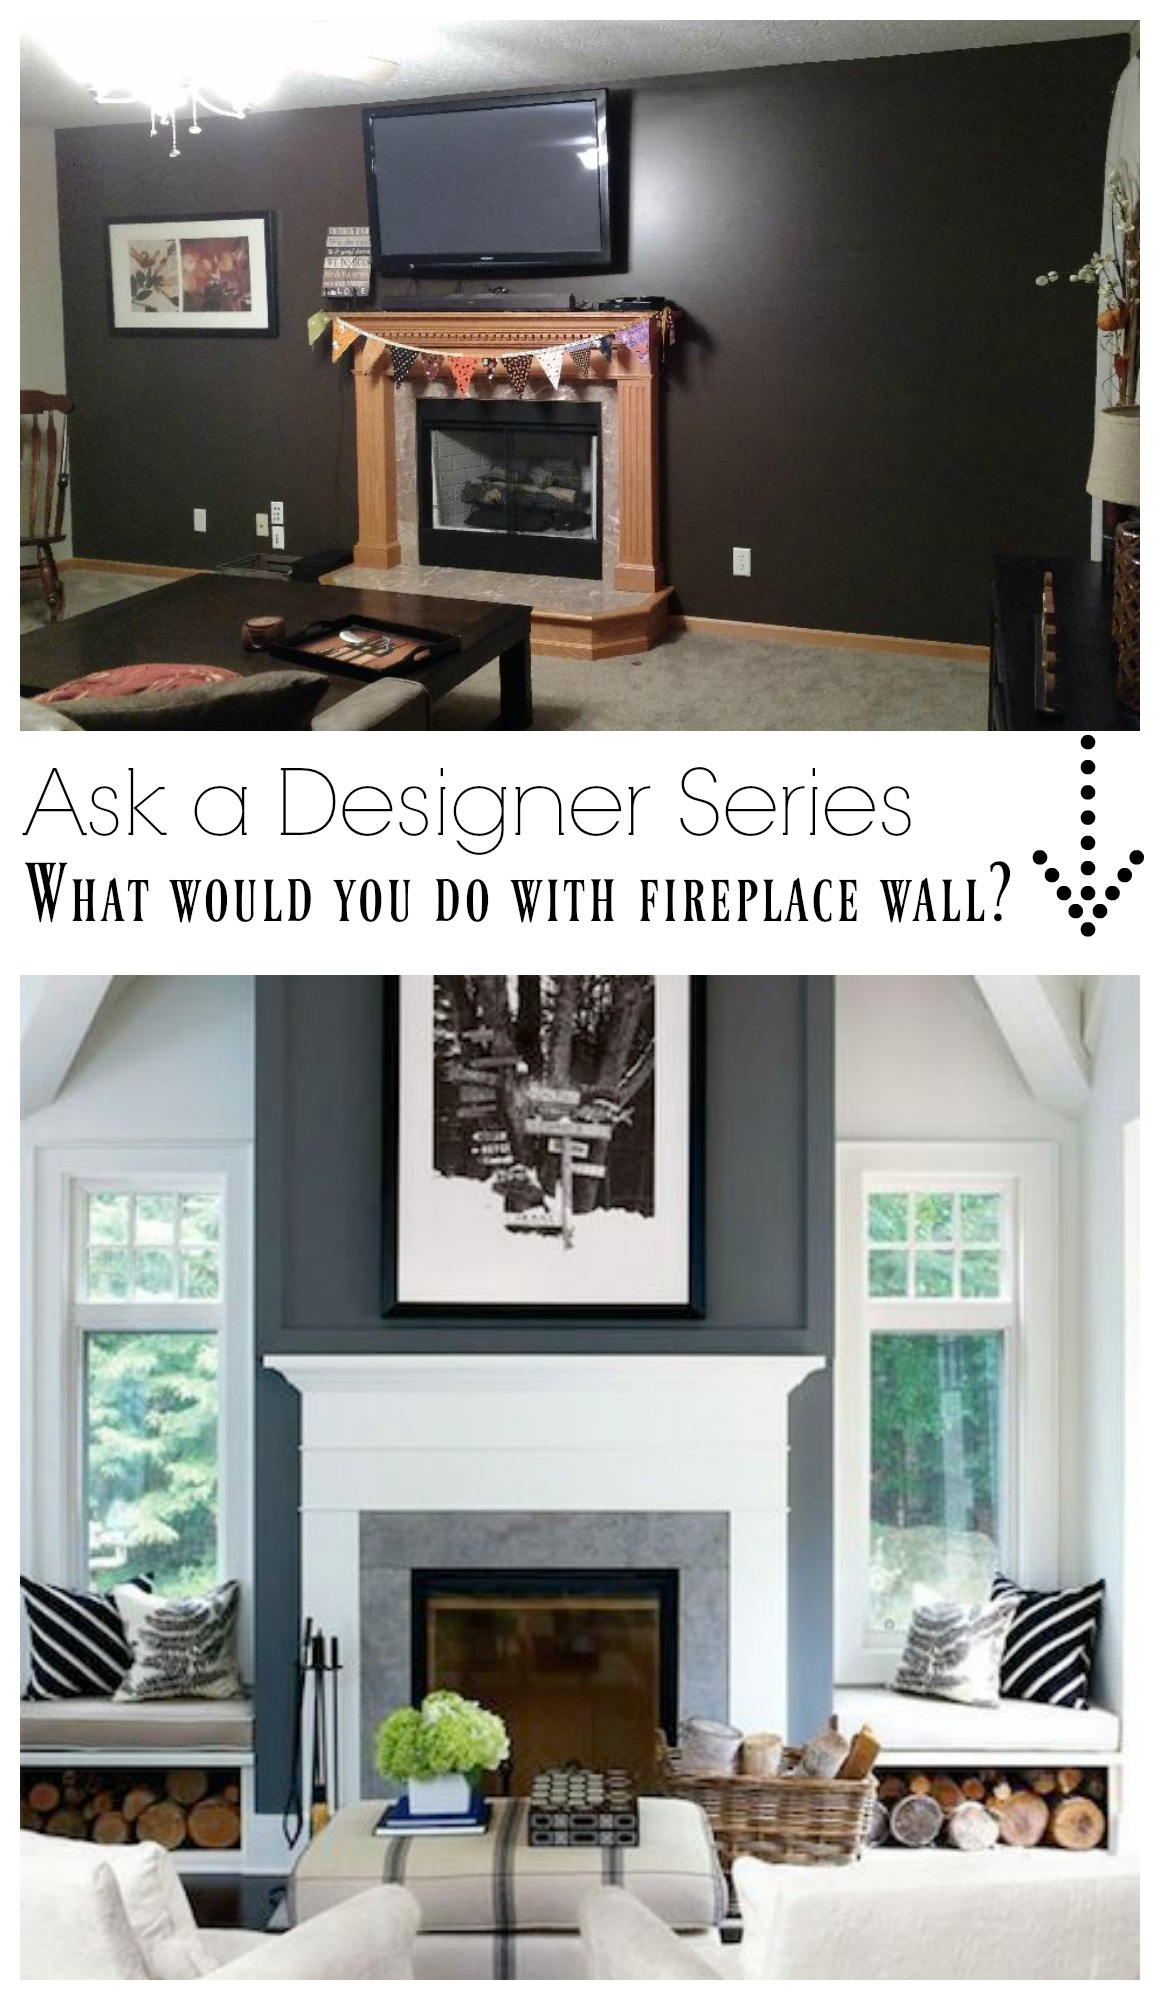 Ask a Desinger Series- What would you do with Fireplace Wall?